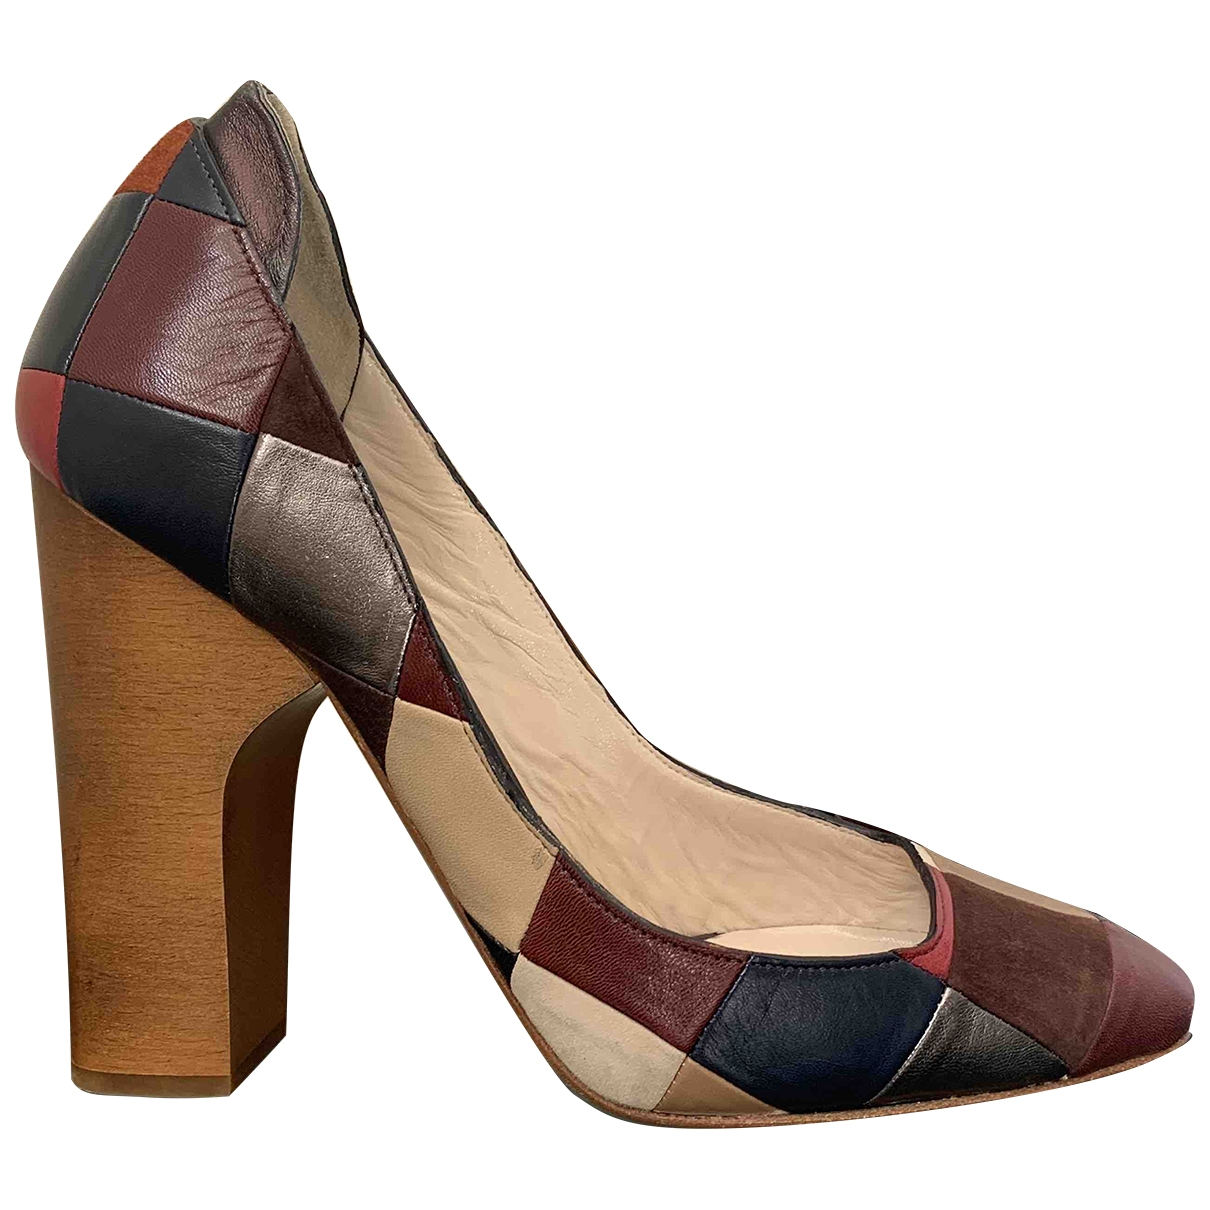 Chloé \N Multicolour Leather Heels for Women 40 EU